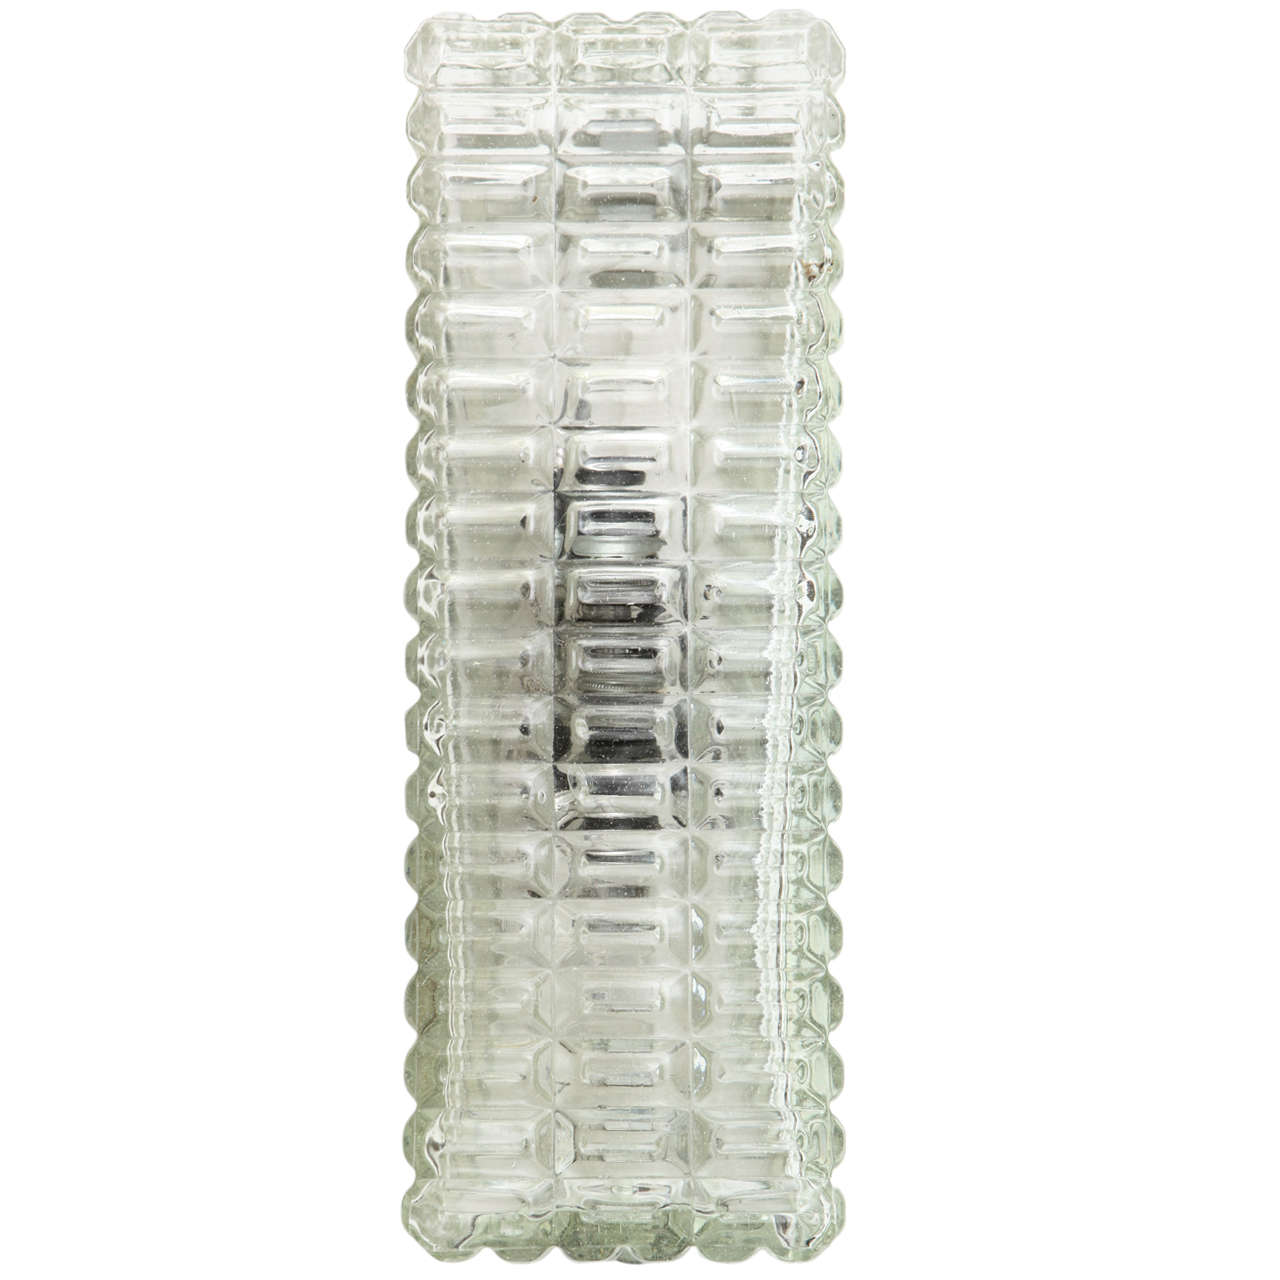 1950s Rectangular Clear Glass Wall Sconce at 1stdibs